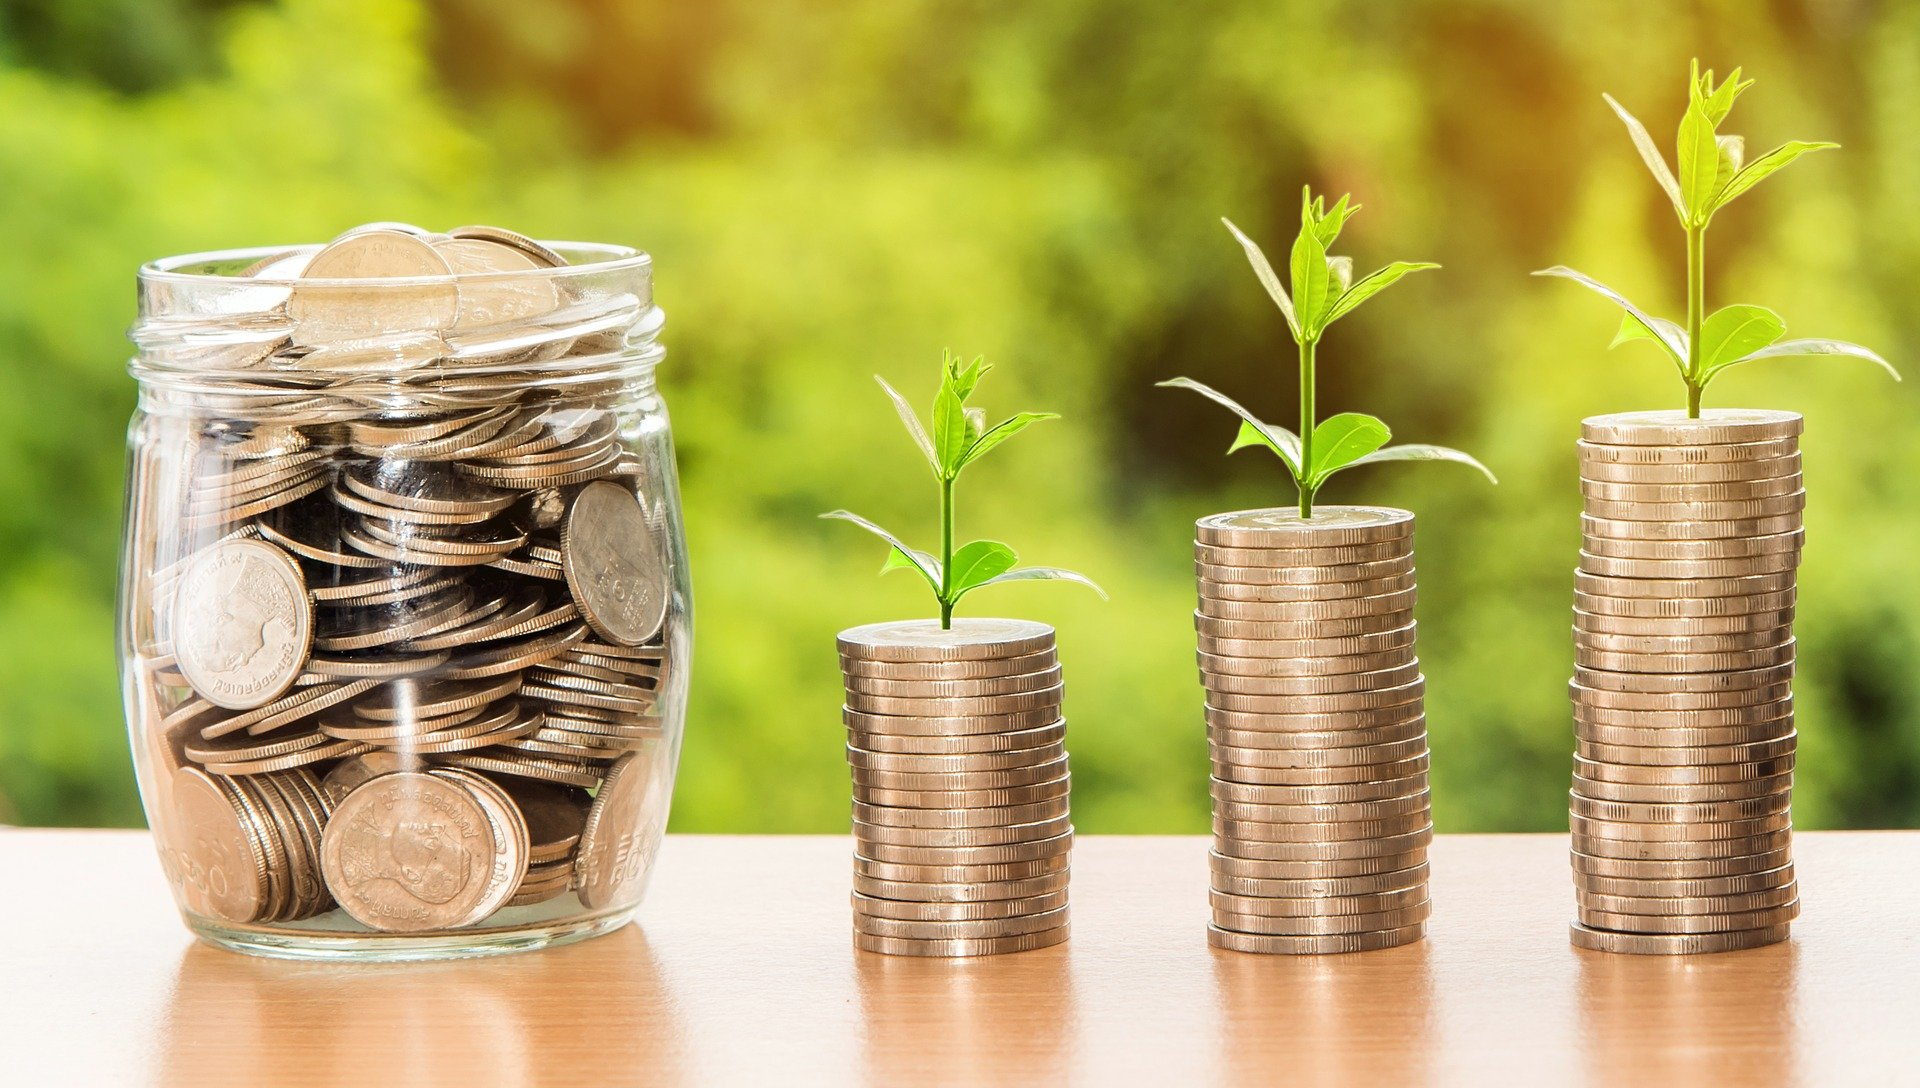 Insurtechs' recent funding rounds signal their success in insurance